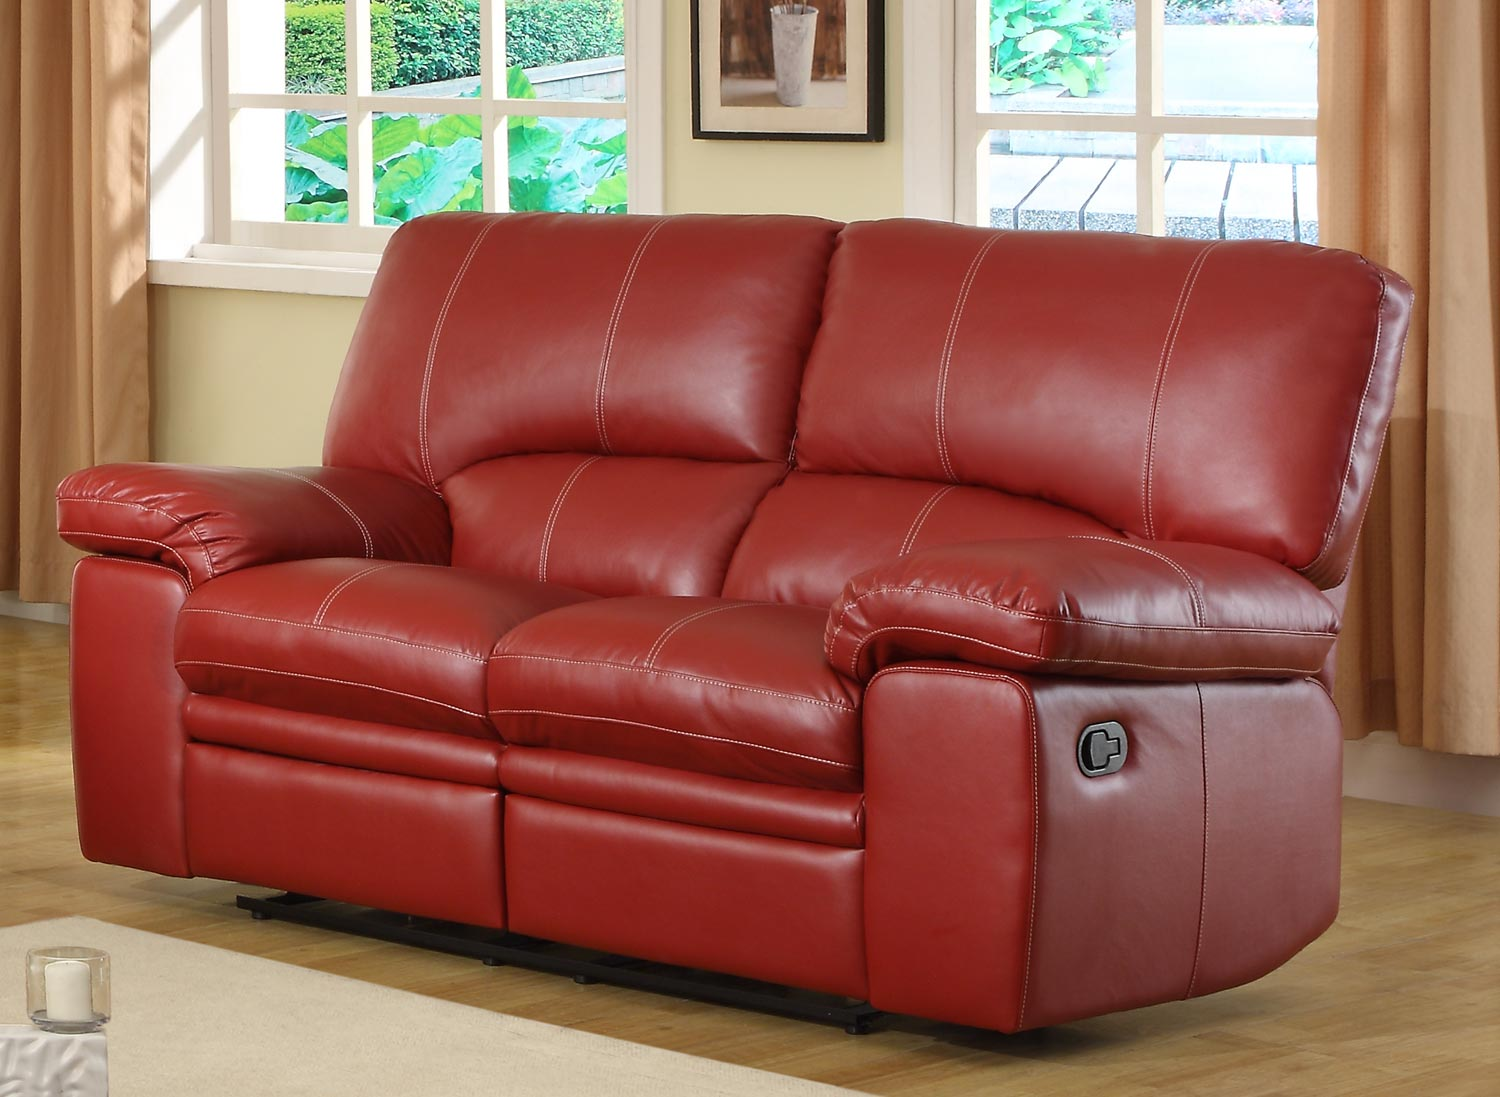 Homelegance kendrick reclining sofa set red bonded leather match u9611red 3 Leather loveseat recliners